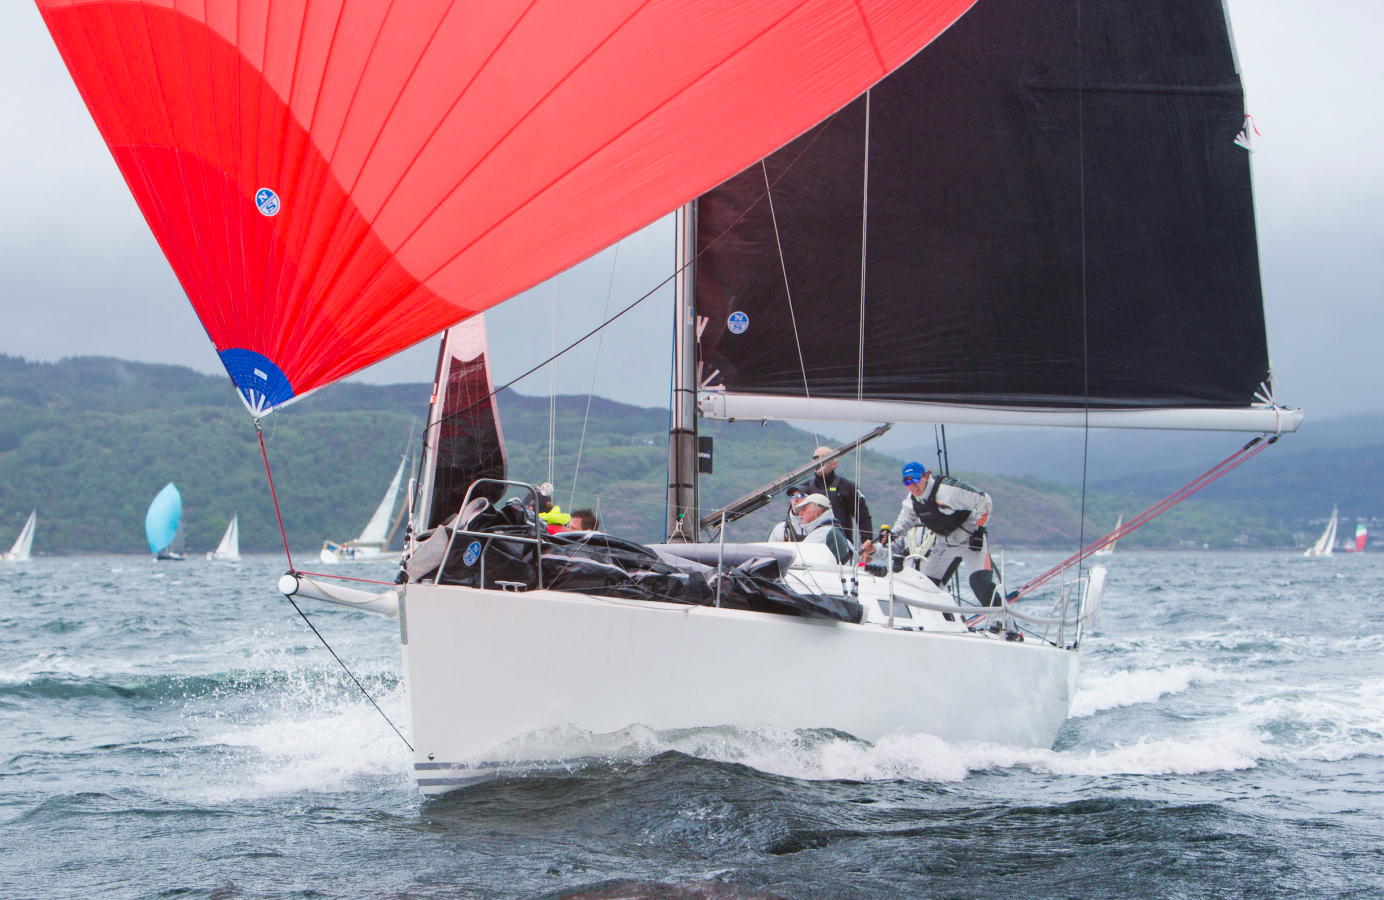 J/109 Chimaera, Andrew Craig, 3Di RAW, Ireland, Maurice O'Connell, North Sails